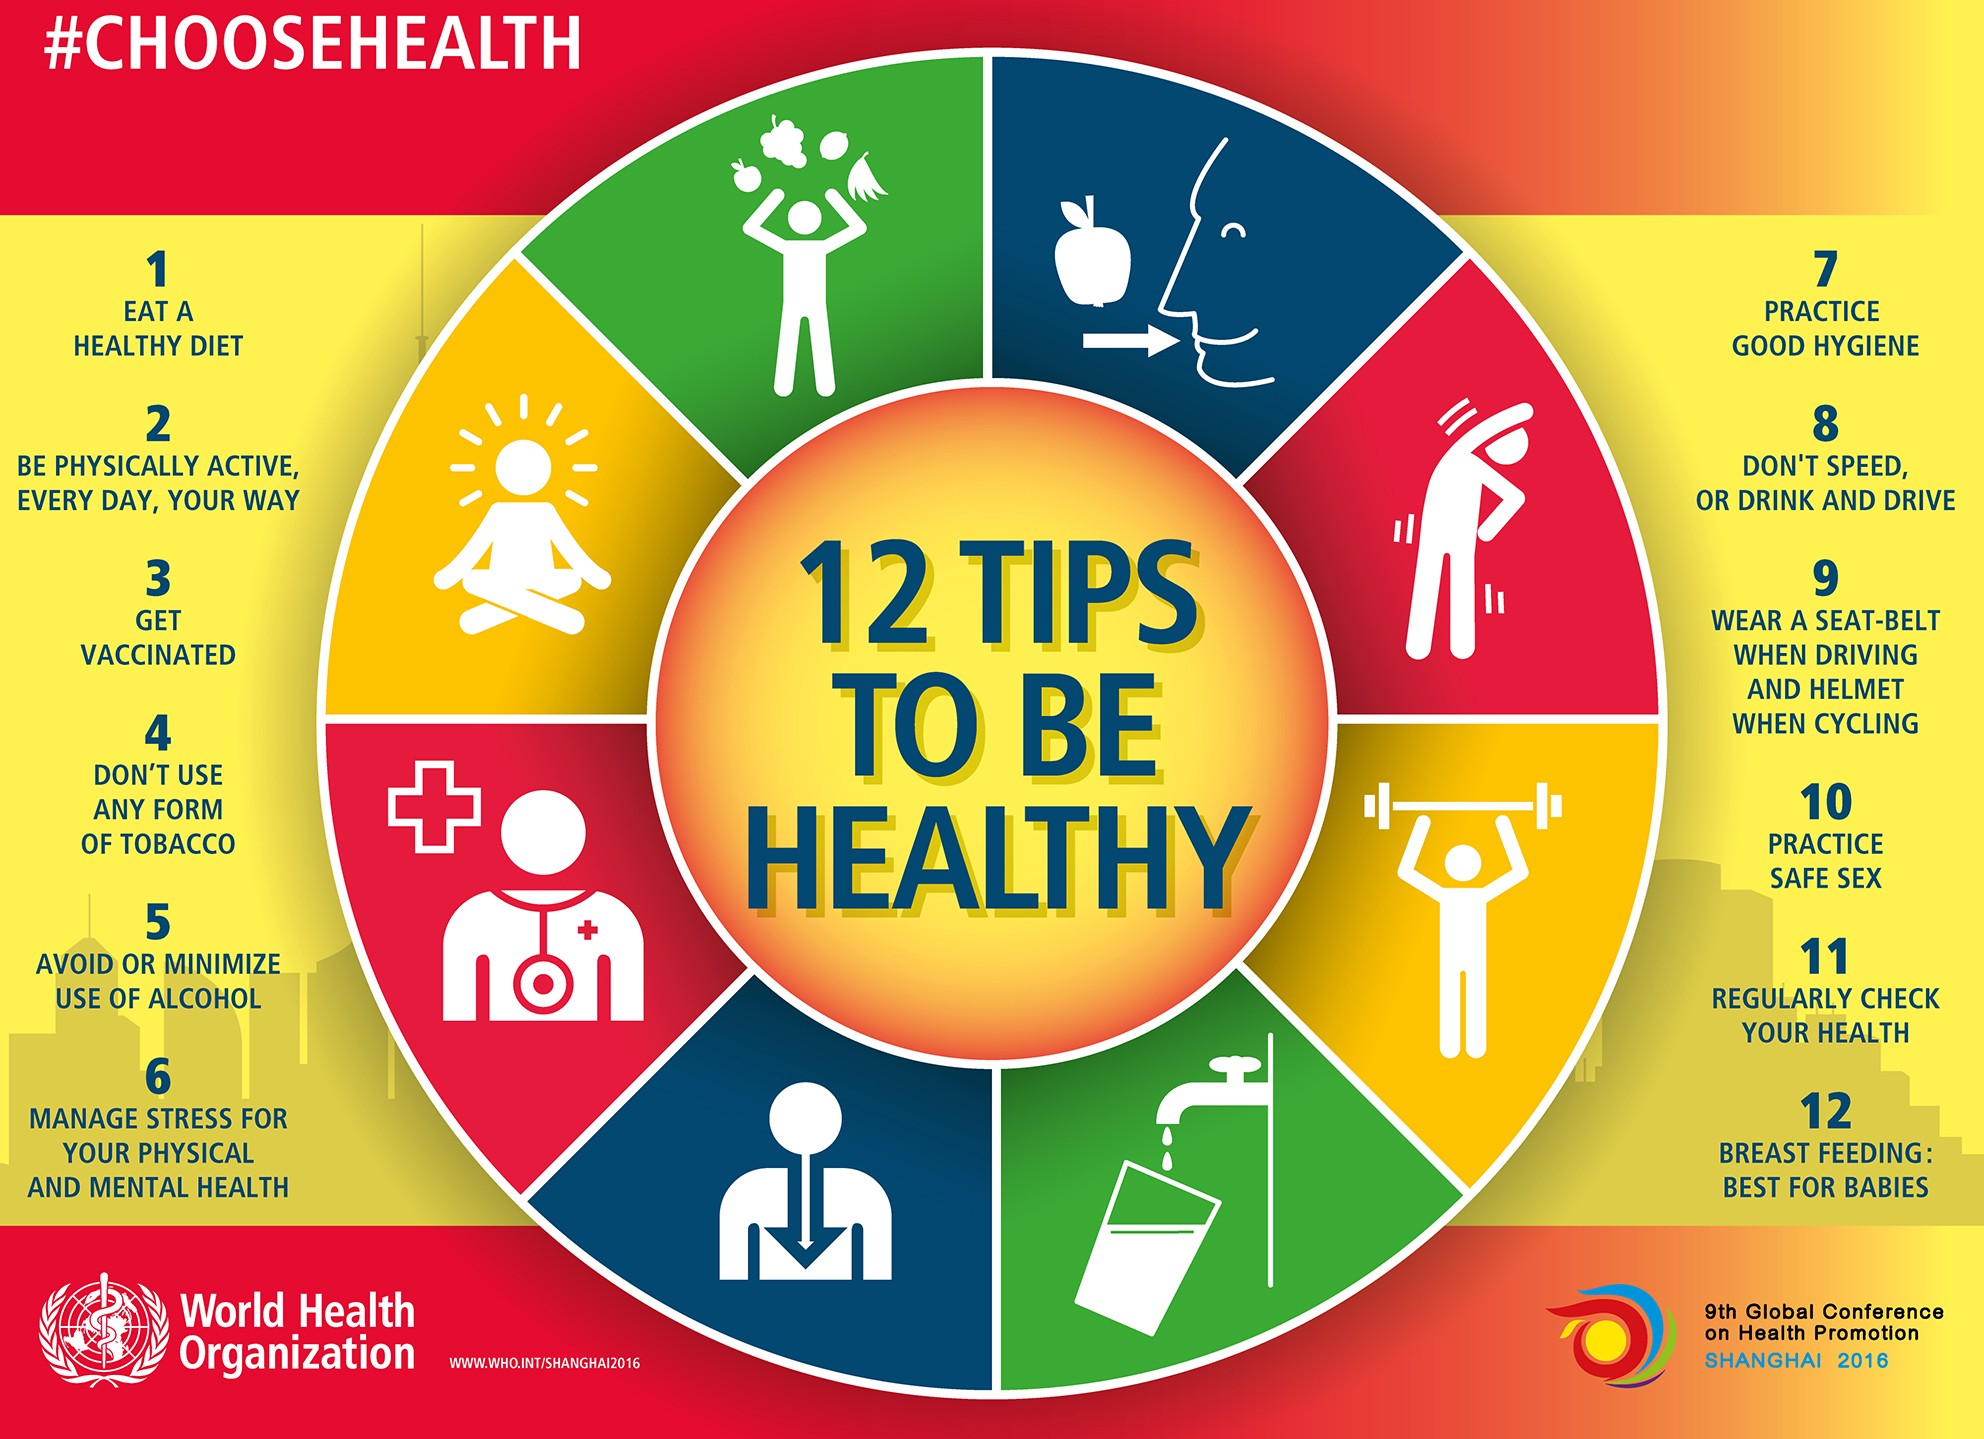 The importance of having a health check regularly